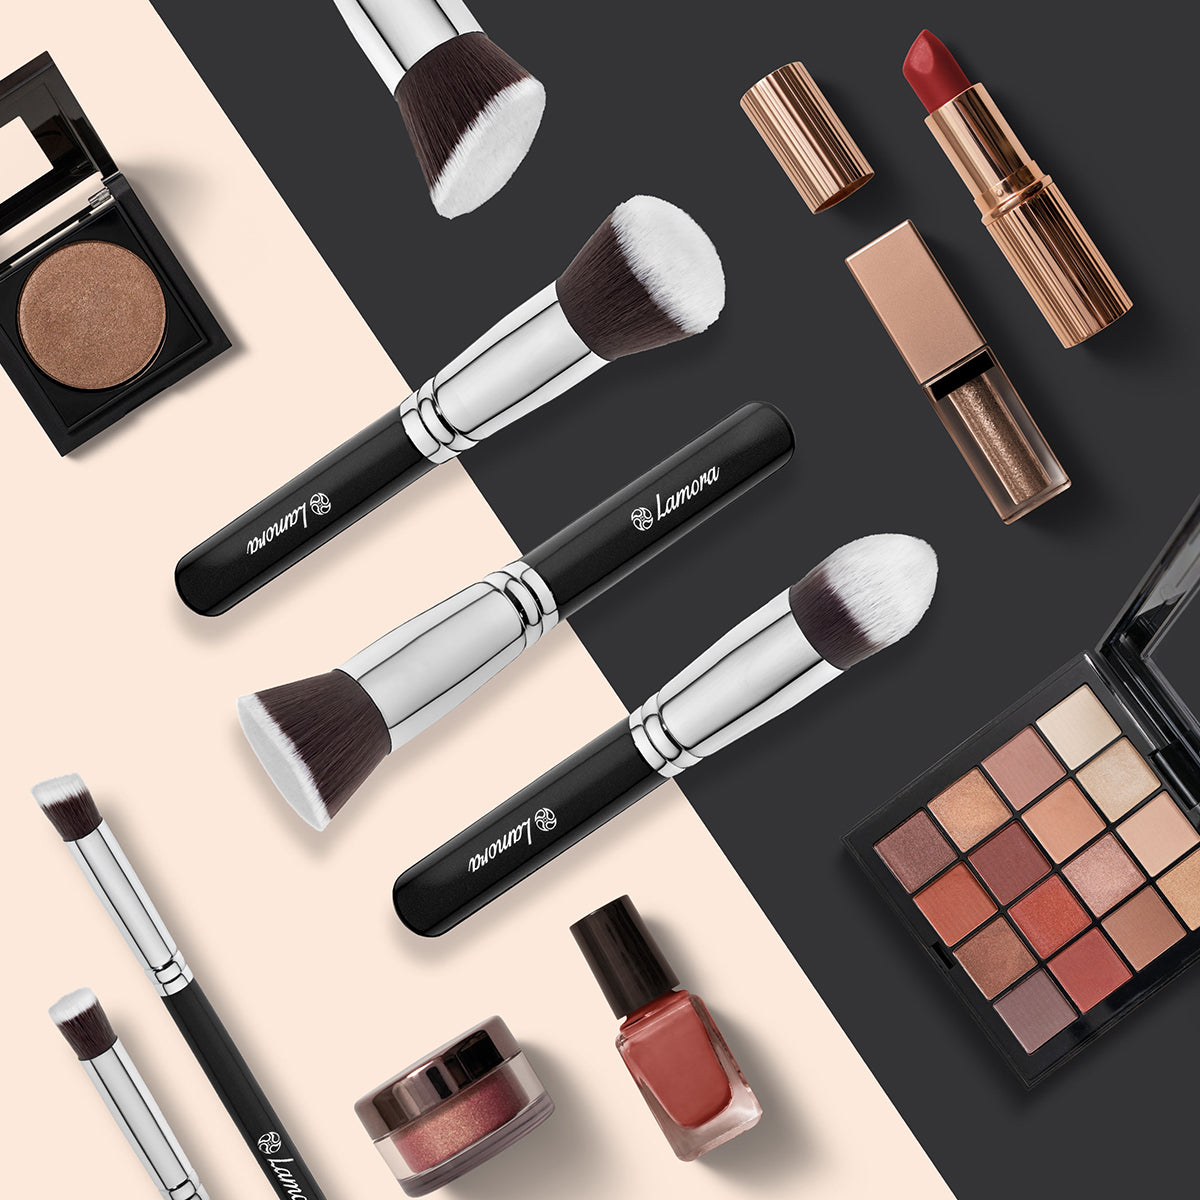 Beauty background image with makeup brushes and cosmetic sets